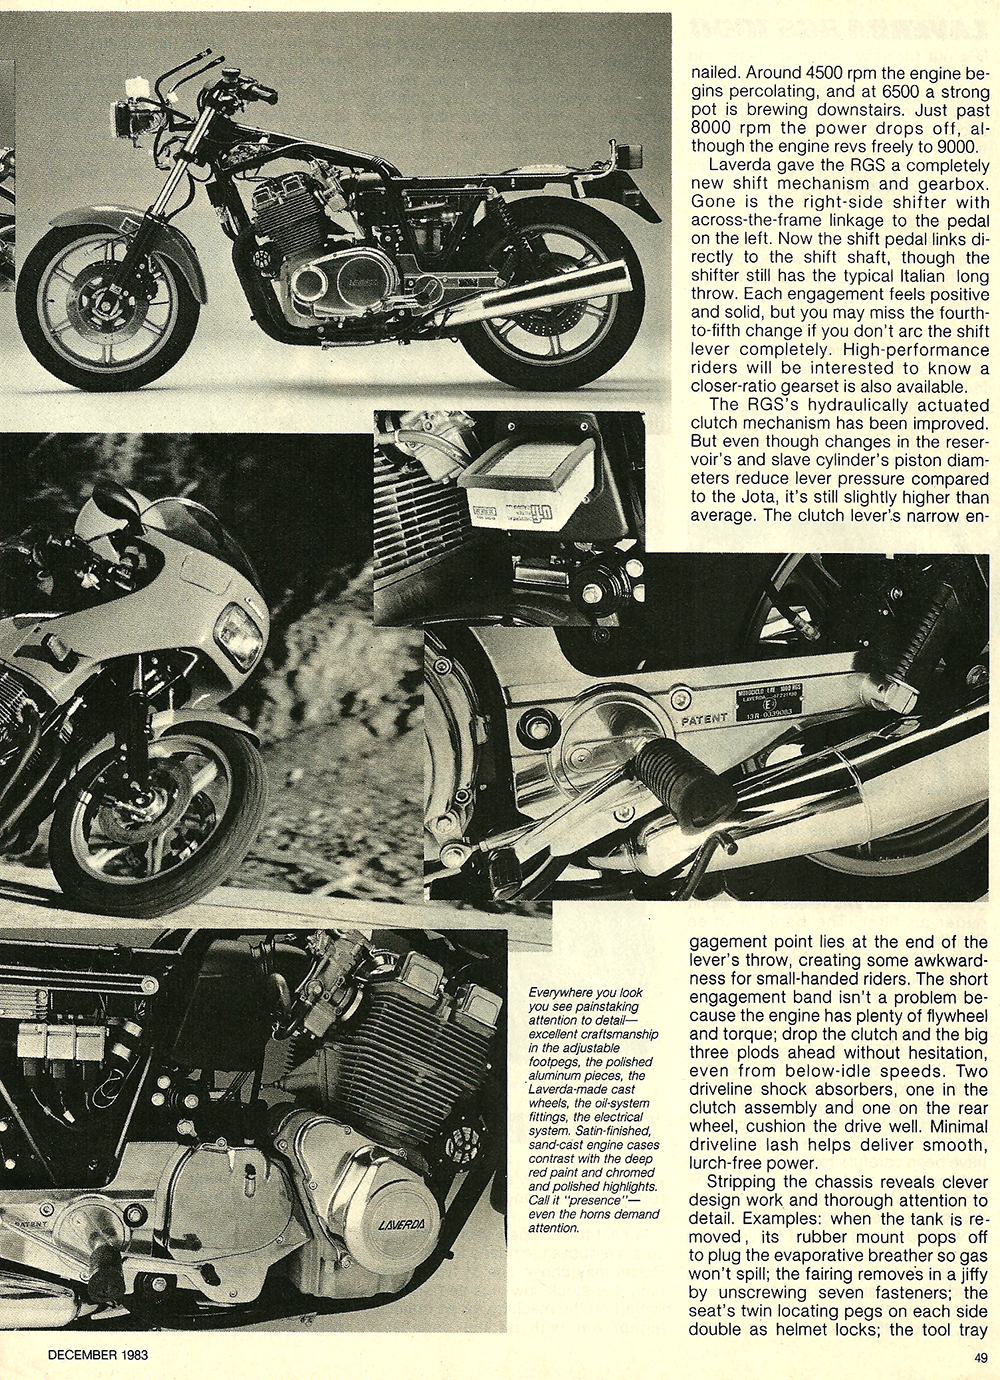 1984 Laverda RGS 1000 road test 6.jpg